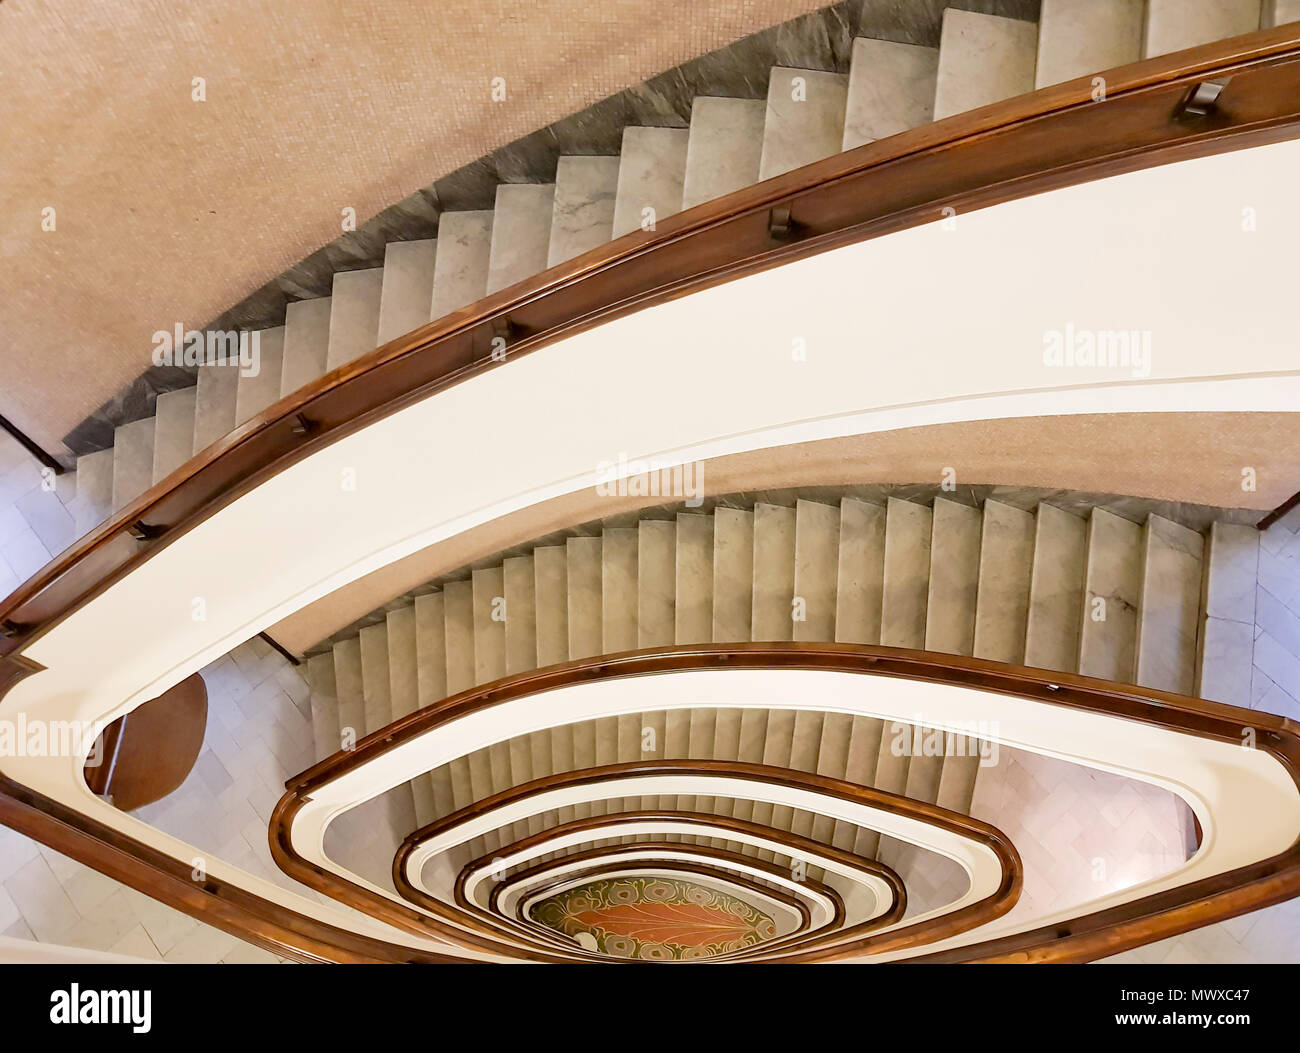 antique spiral staircase stock photos antique spiral staircase stock images alamy. Black Bedroom Furniture Sets. Home Design Ideas